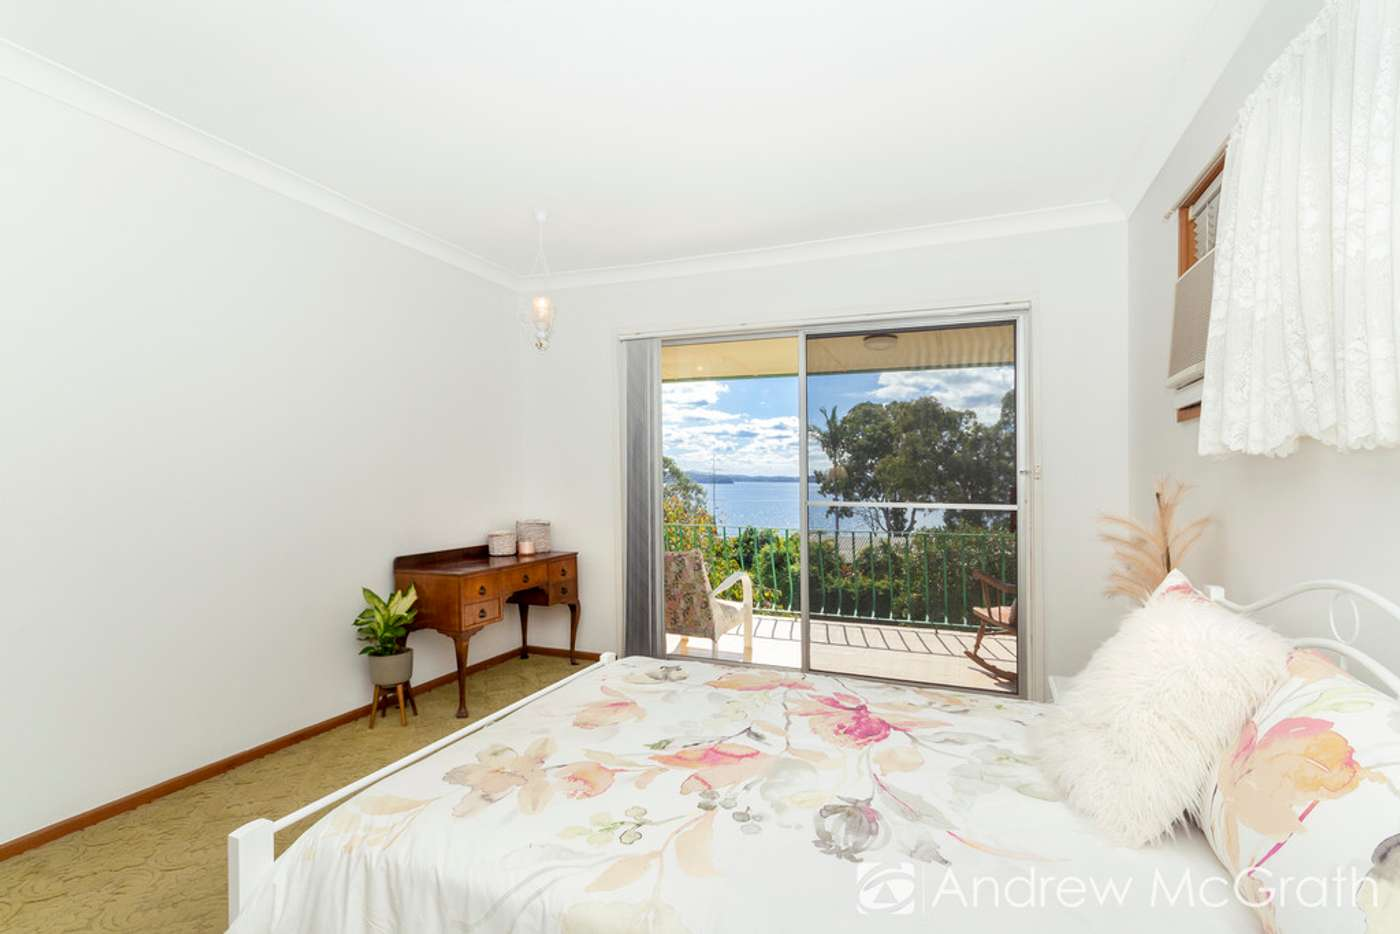 Sixth view of Homely house listing, 12 Central Avenue, Nords Wharf NSW 2281